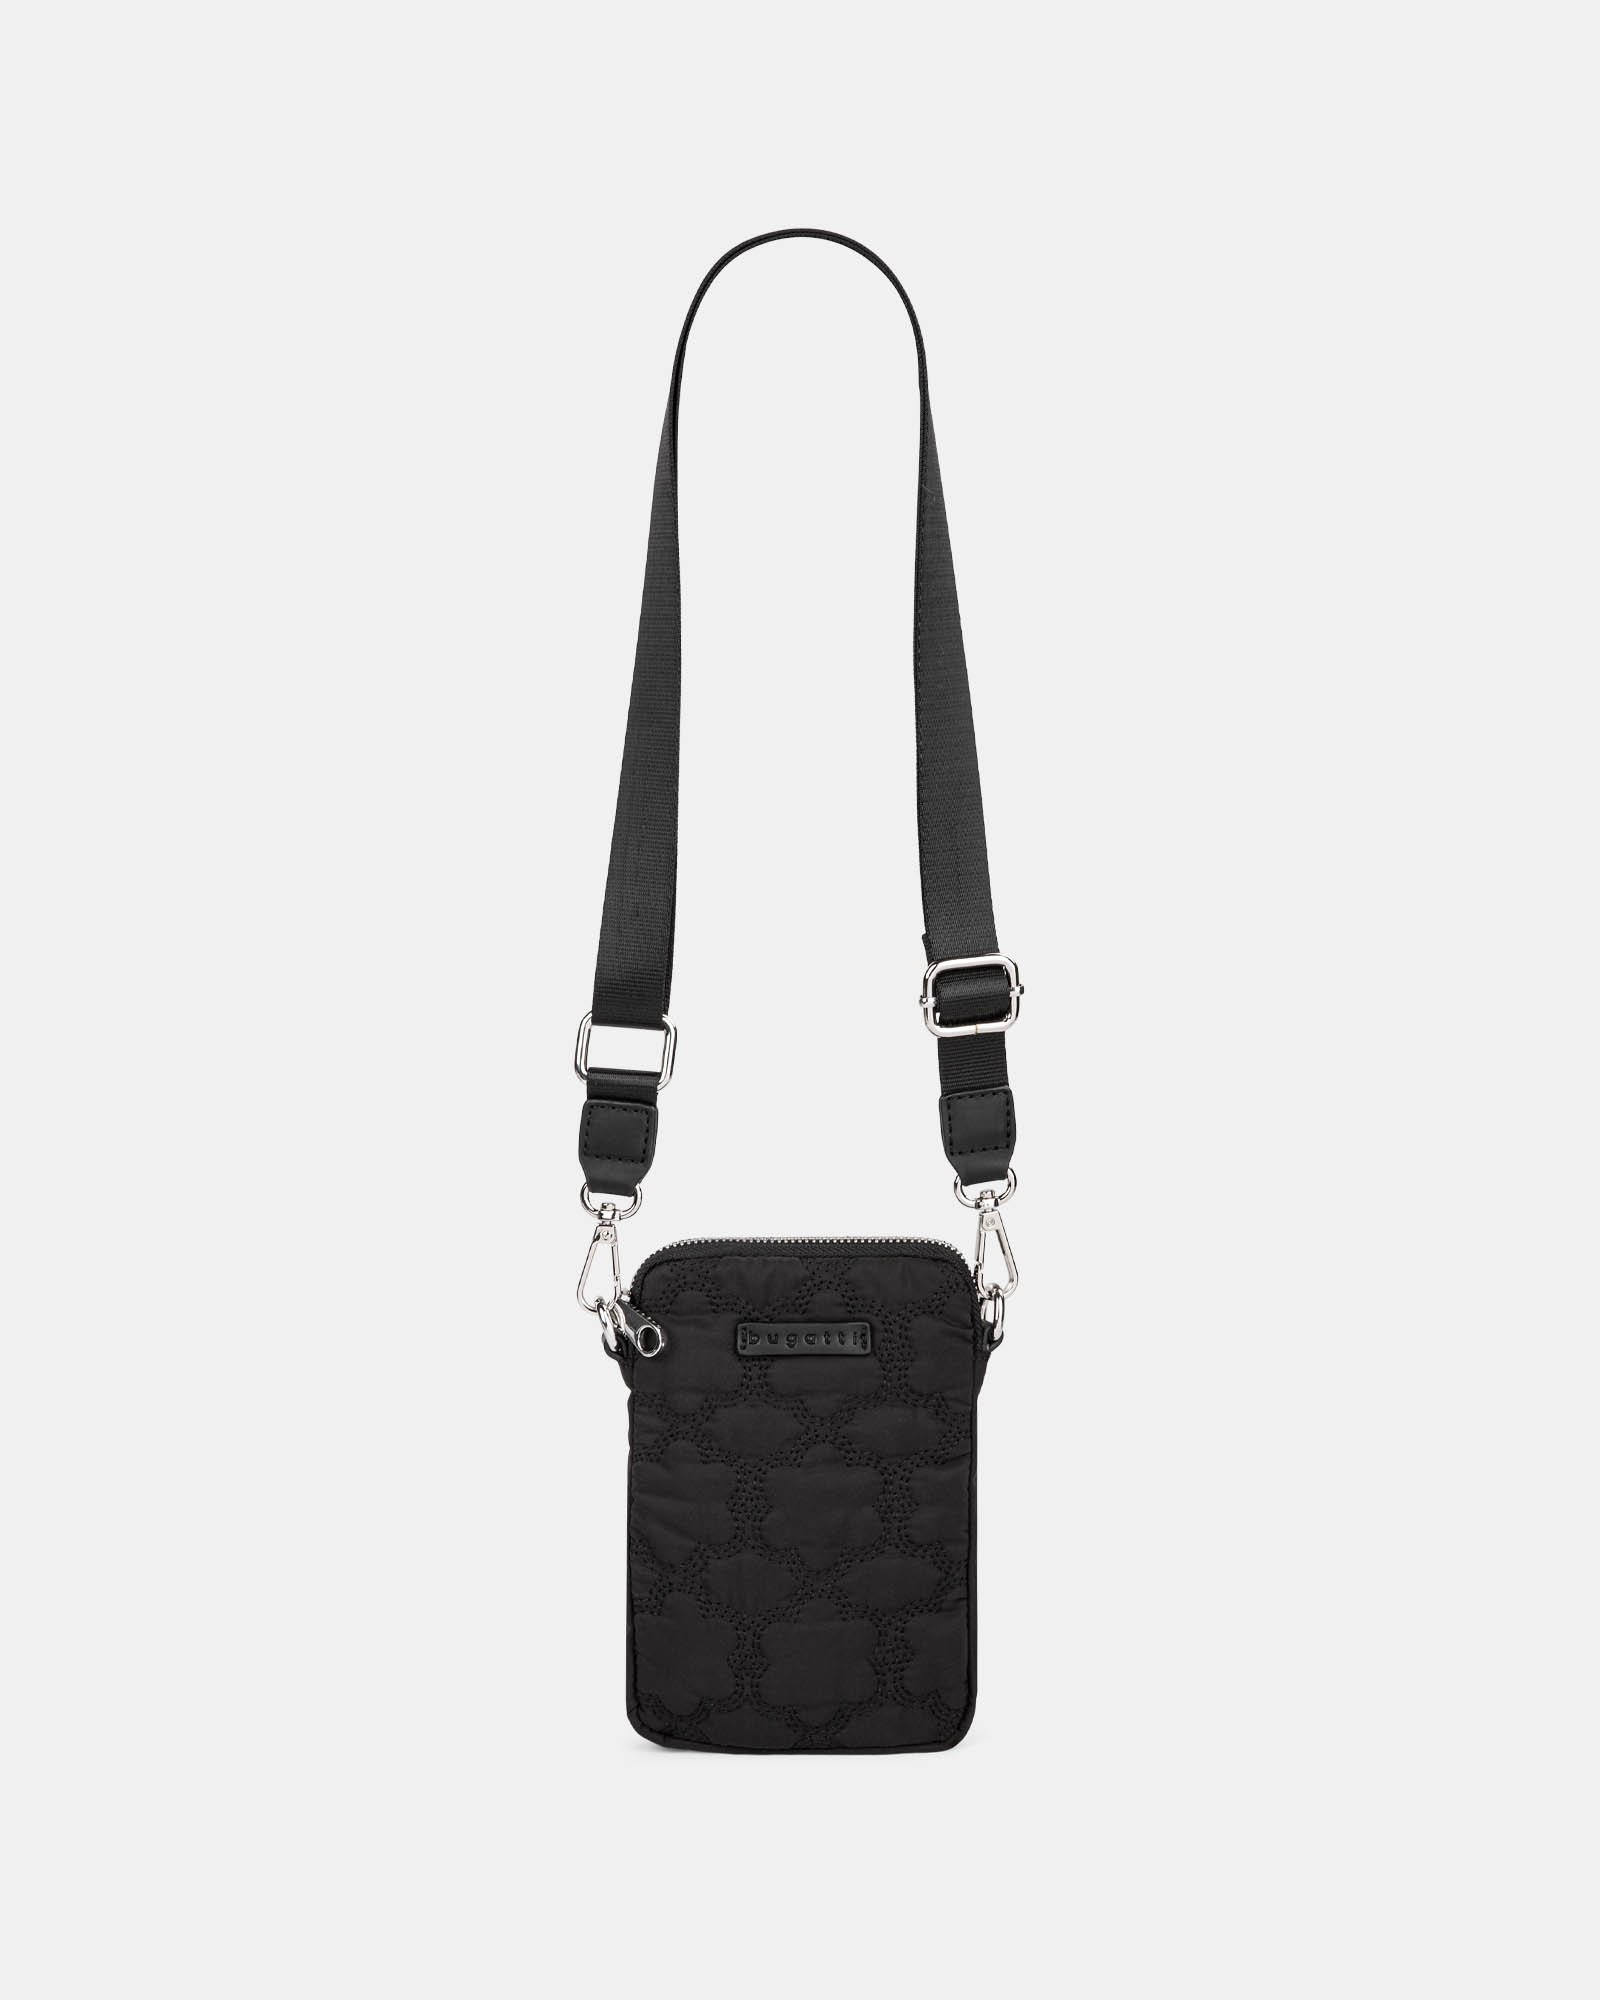 Montmartre - Mobile Case Crossbody with Top main zippered opening - Black - Bugatti - Zoom